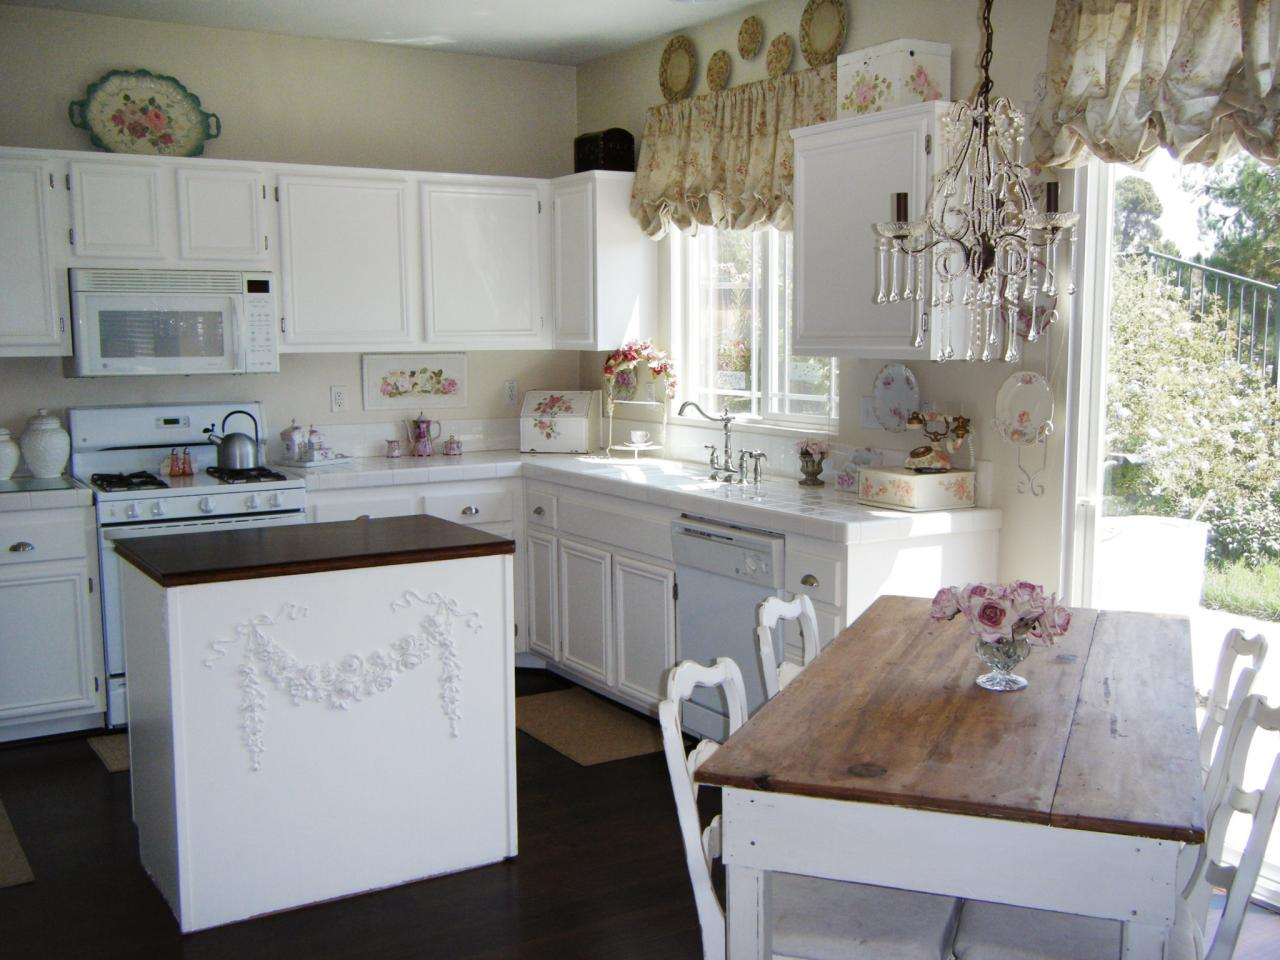 Country kitchen design pictures ideas tips from hgtv for Kitchen design 9